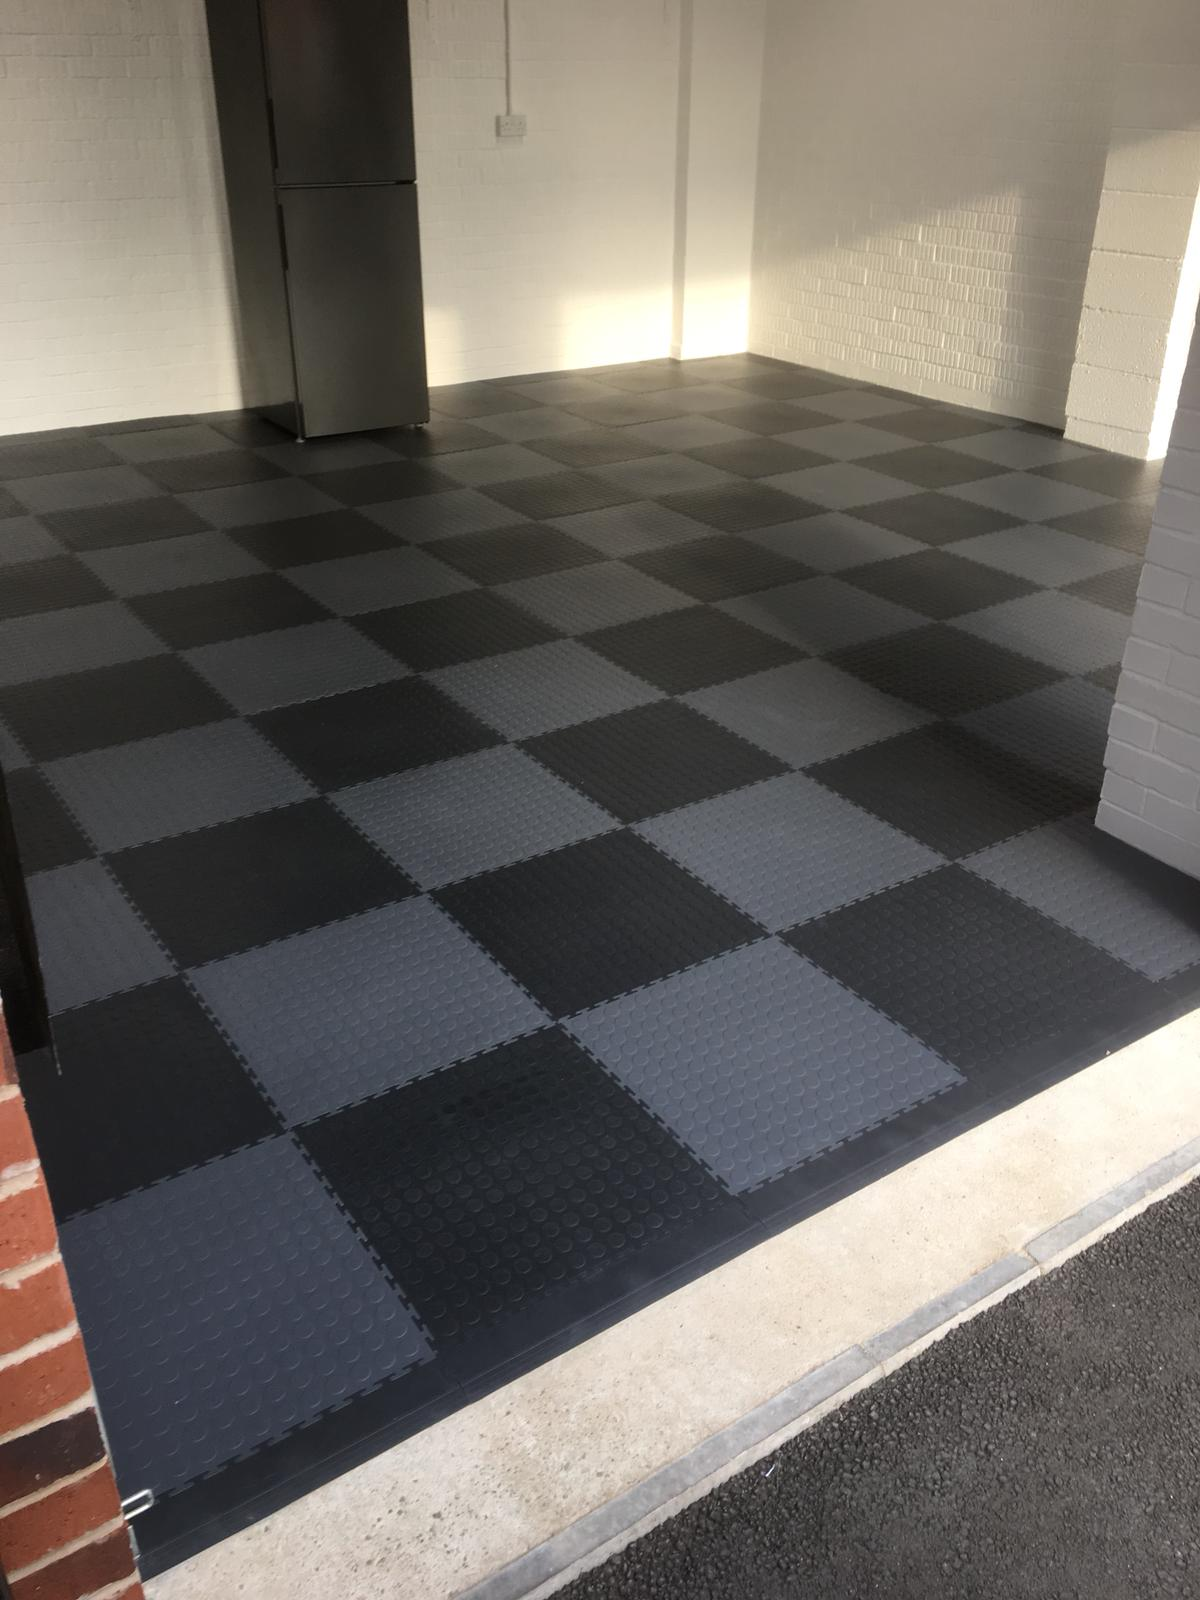 Another garage floor transformed DIY by a customer in a short day. Graphite and dark grey tiles providing a tasteful chequer pattern  Note the front ramps nicely positioned just inside the garage door. All loose laid, not bonded. Dust eliminated and garage floor insulated.